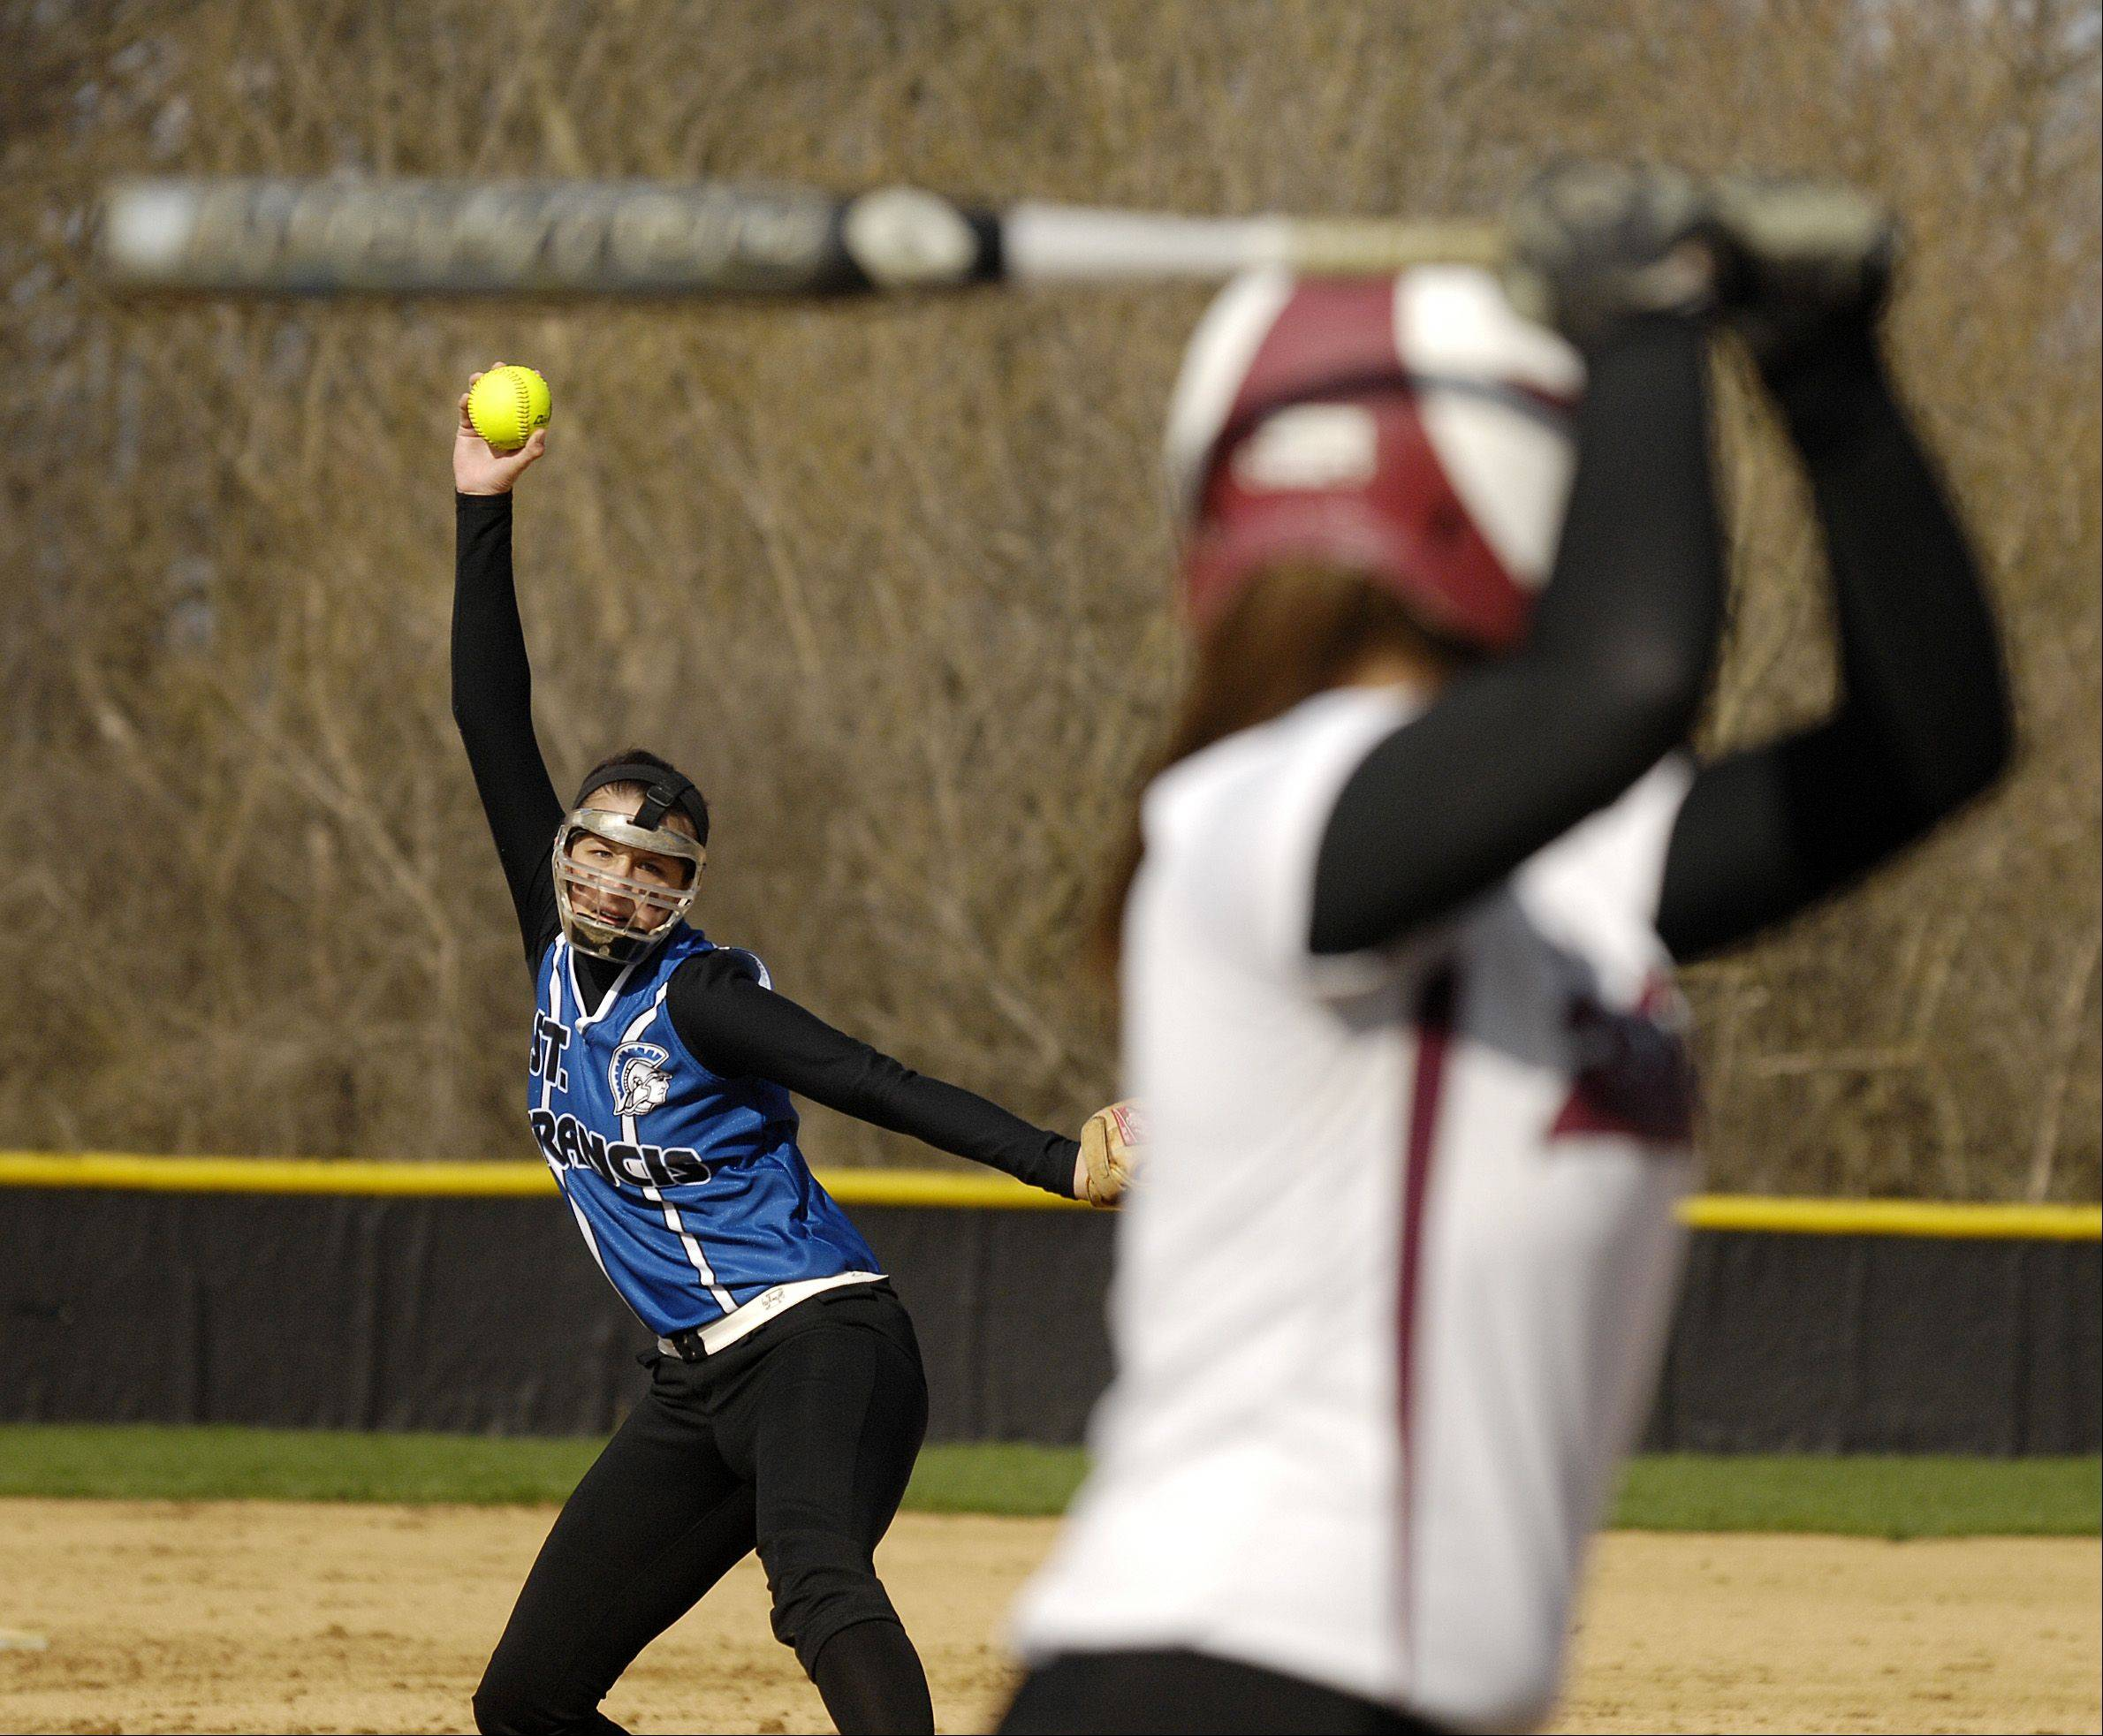 Maggie Remus of St. Francis pitches against Gina Graff of Wheaton Academy in West Chicago, Wednesday.